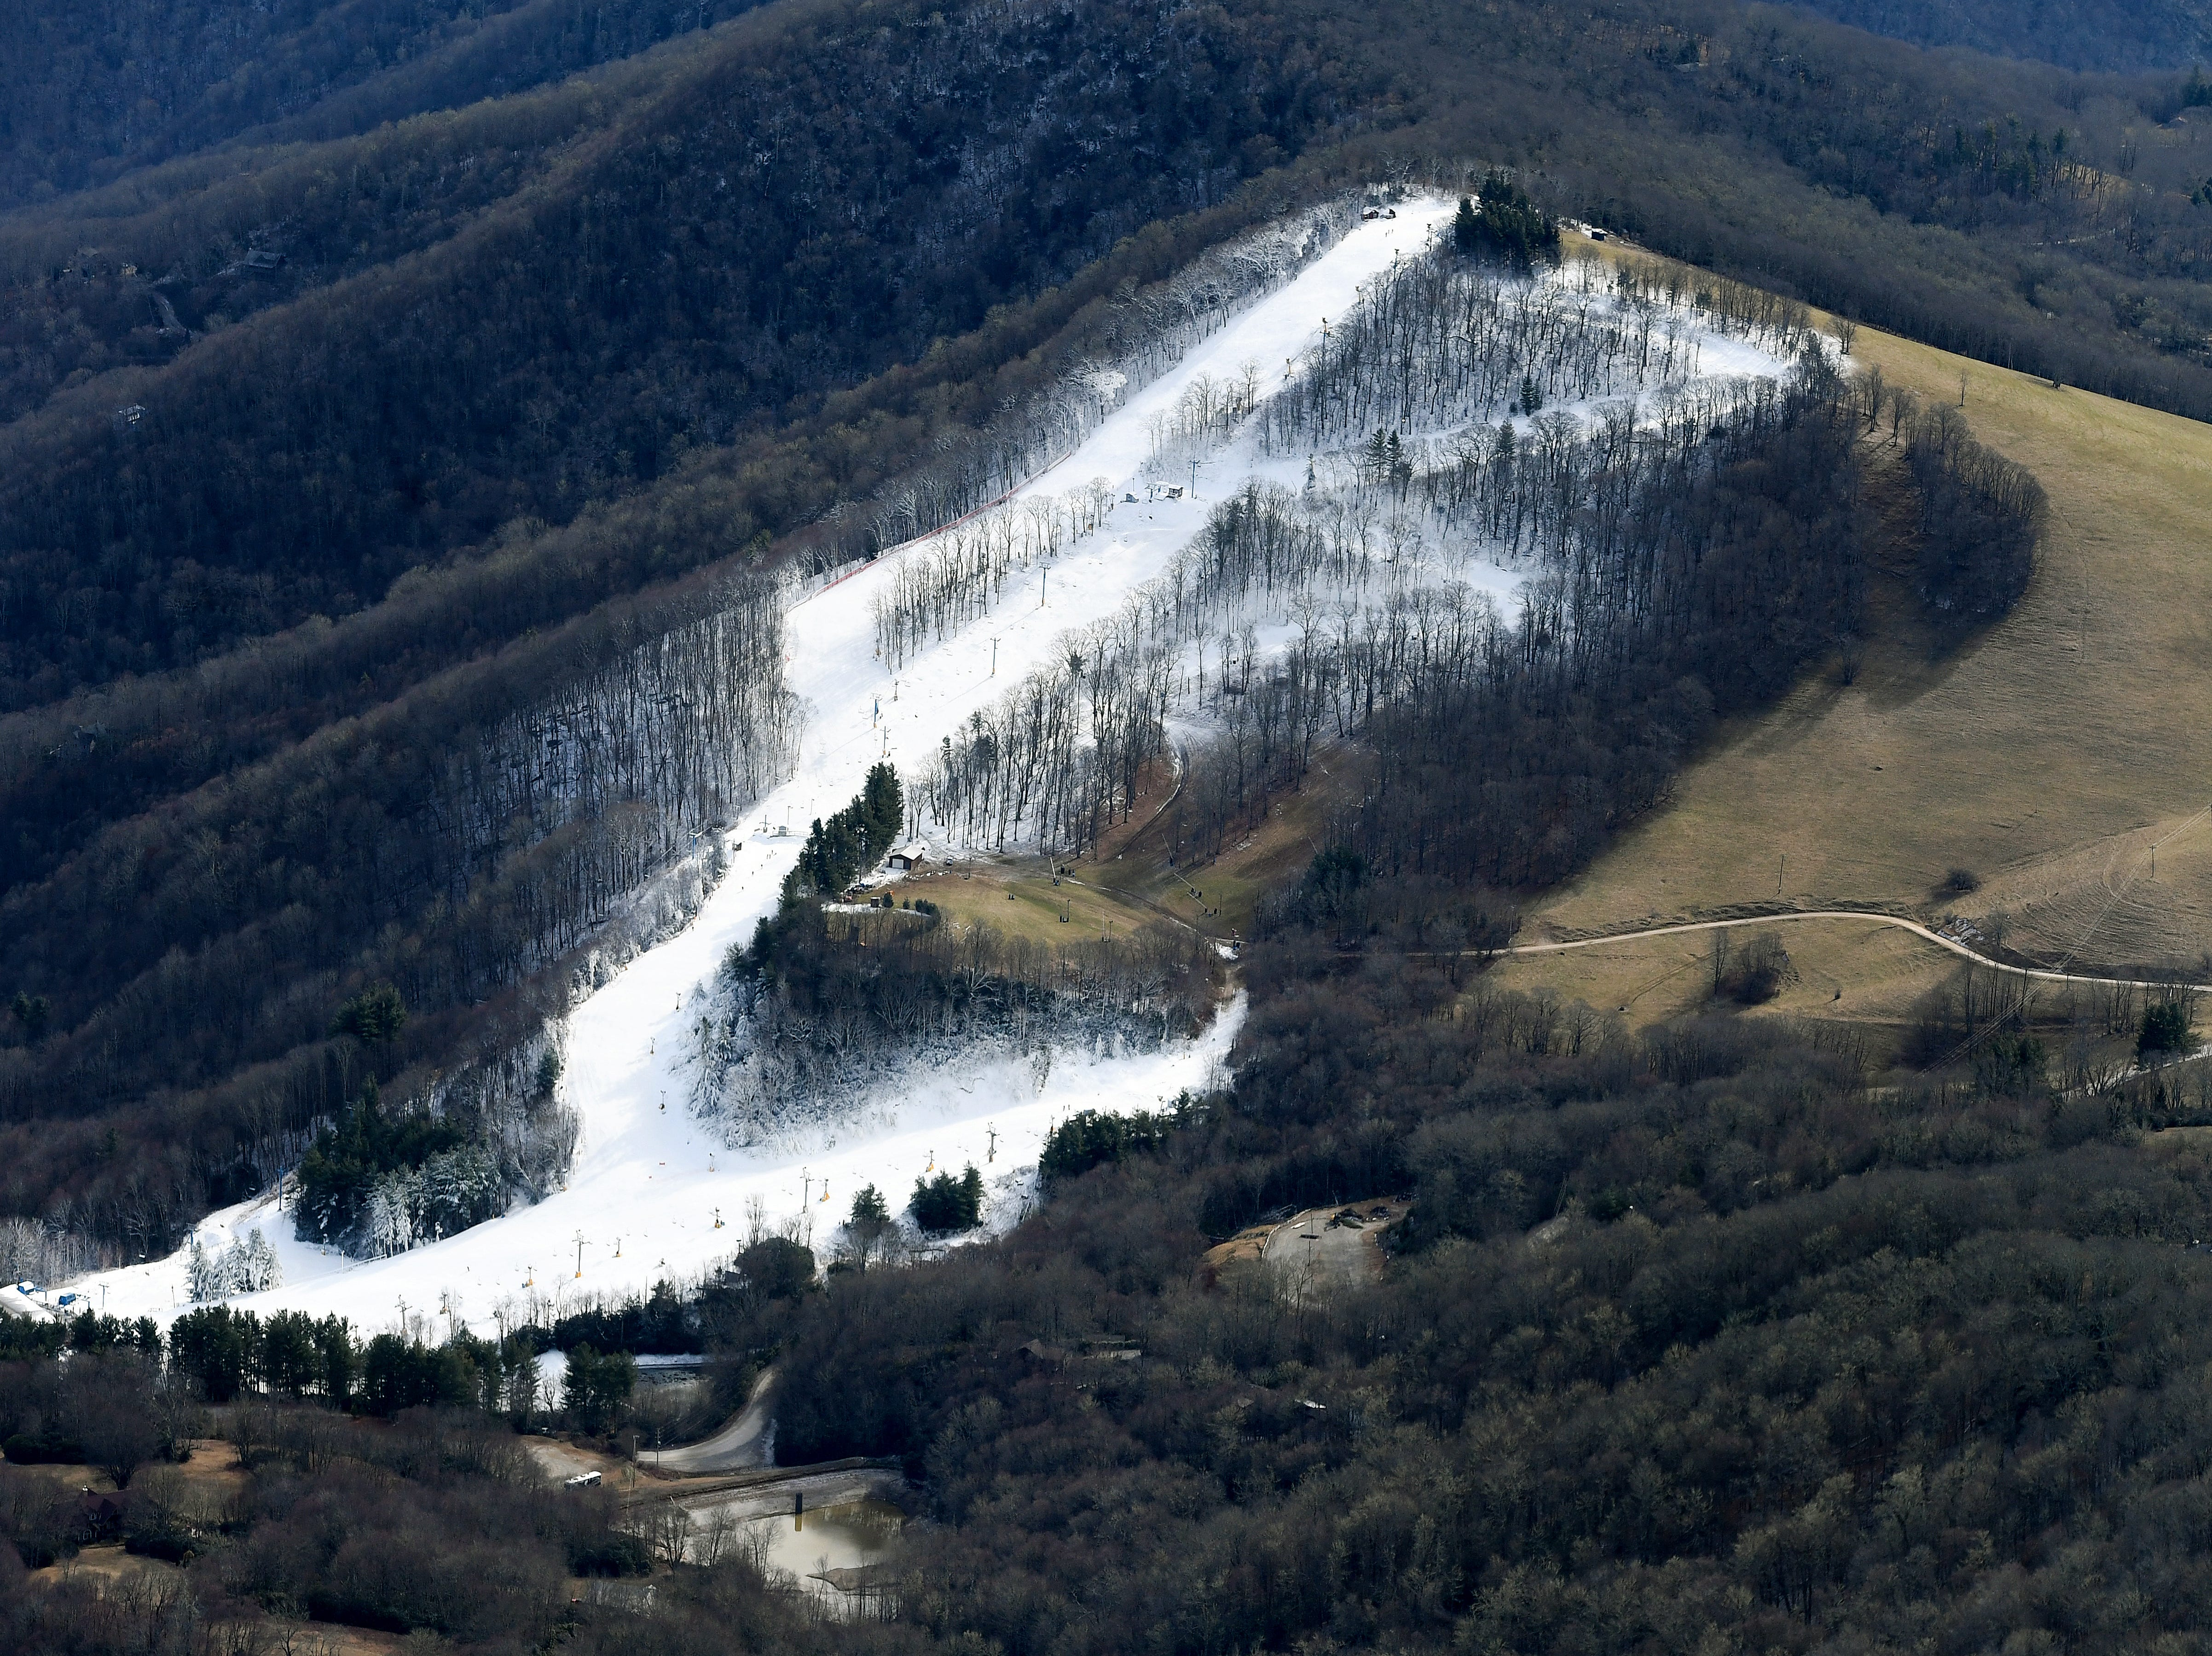 The Cataloochee Ski area is seen from the air on Dec. 6, 2018. Photo made possible by SouthWings.